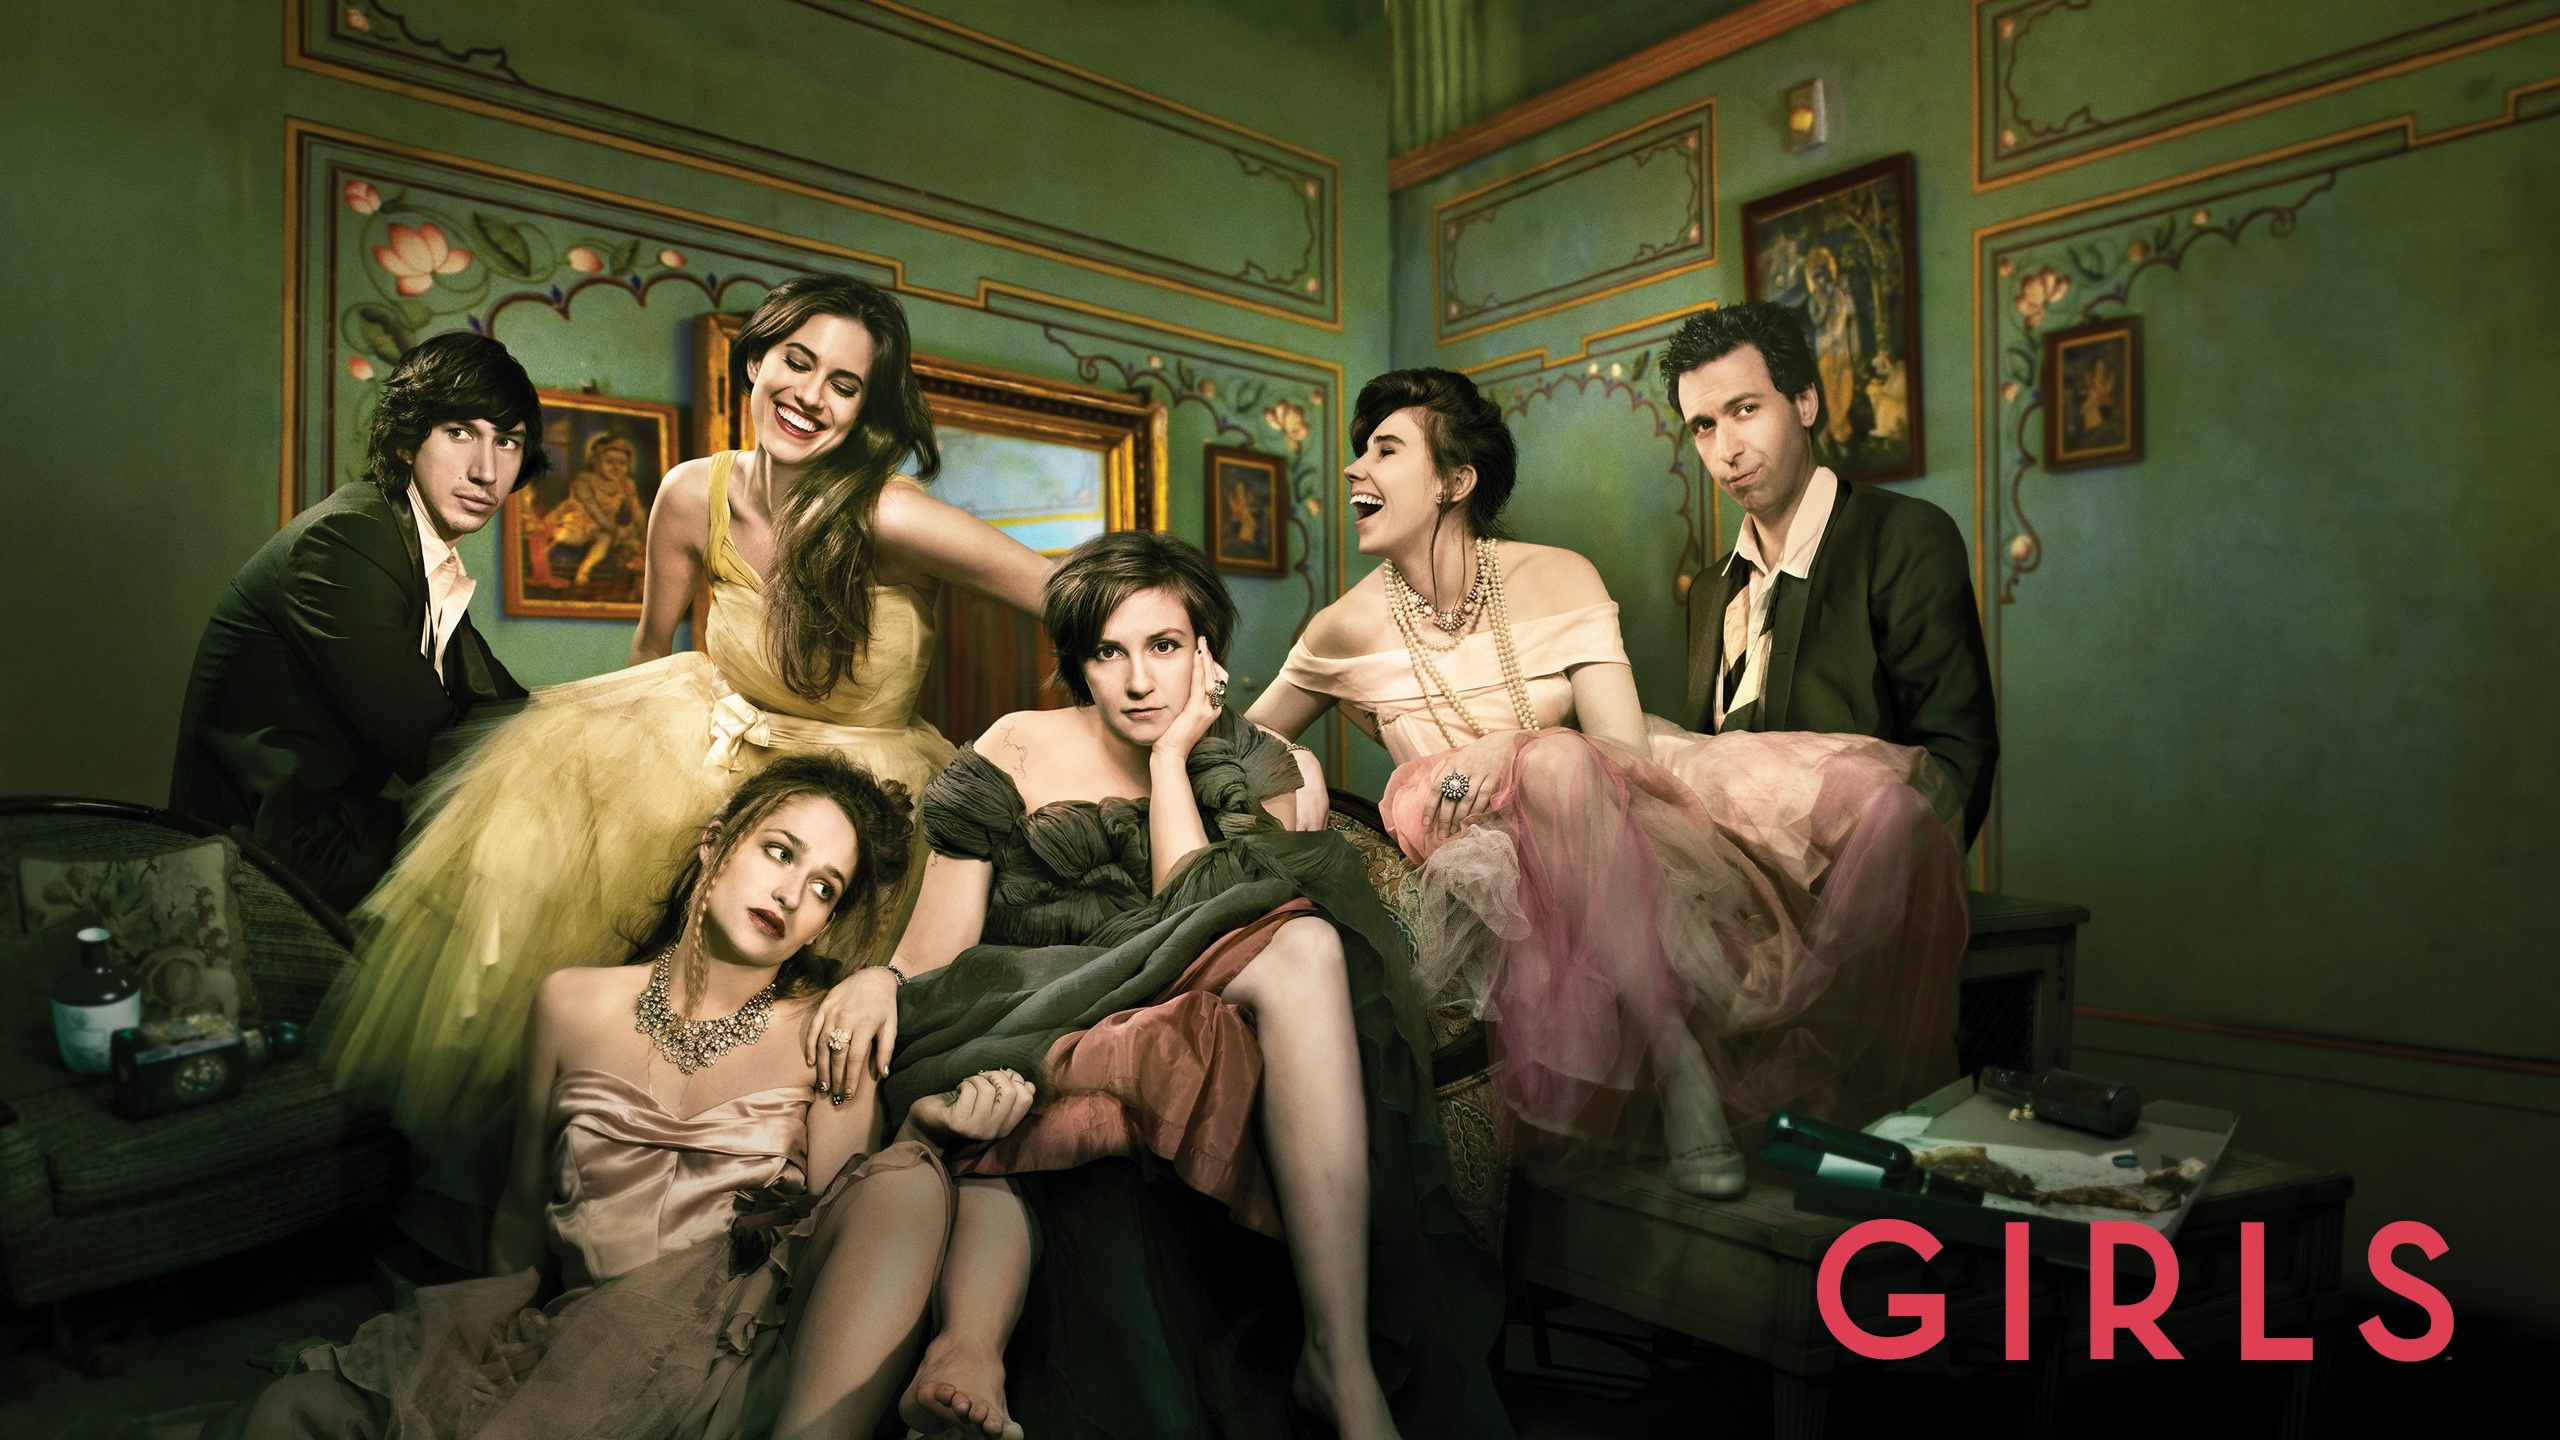 girls tv series wallpapers in jpg format for free download